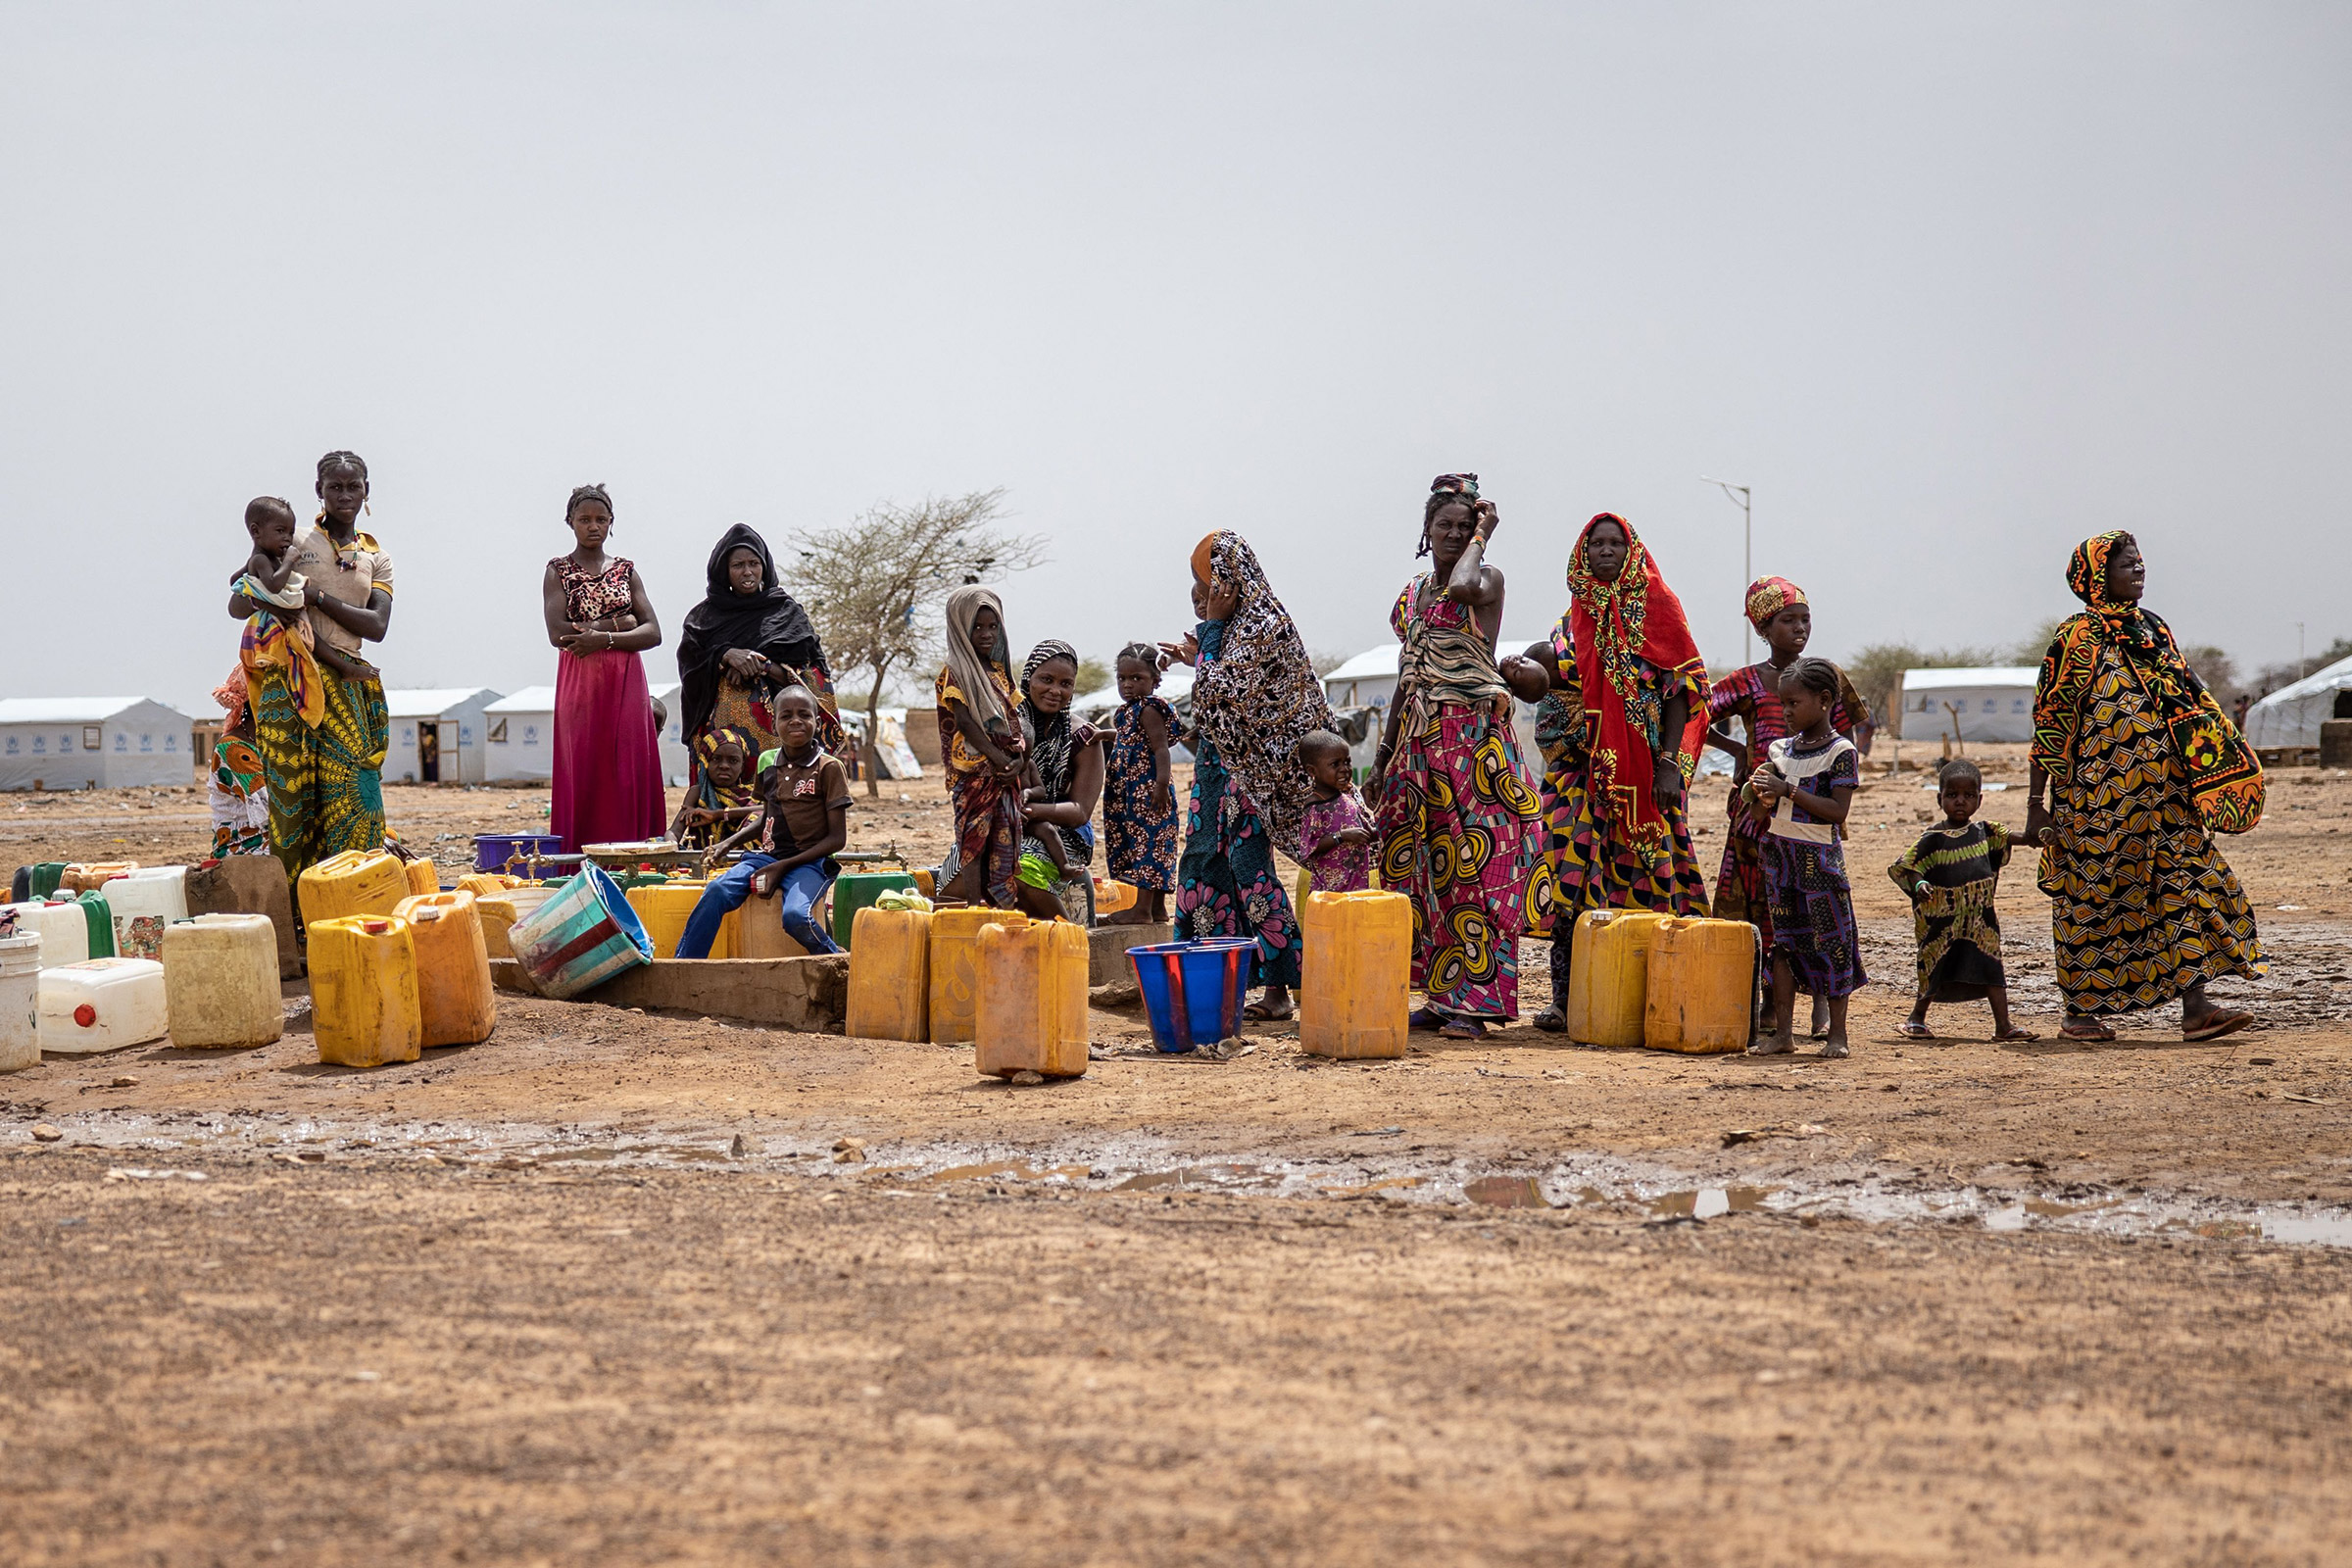 Women line up for water at Goudoubo camp in BurkinaFaso, on June20. The camp is sheltering thousands of Malians who have fled jihadist violence in the region.